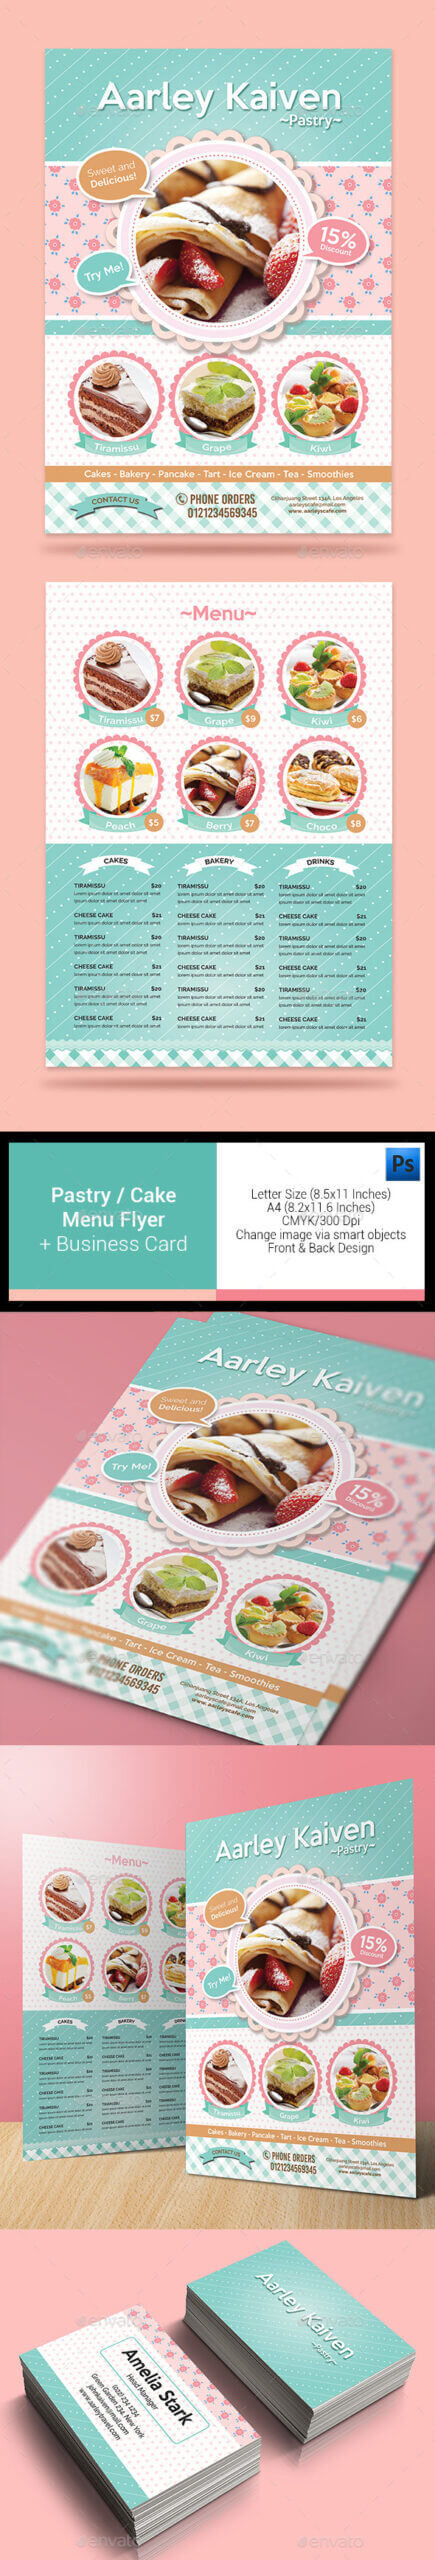 Cake Flyer Graphics, Designs & Templates From Graphicriver With Cake Flyer Template Free